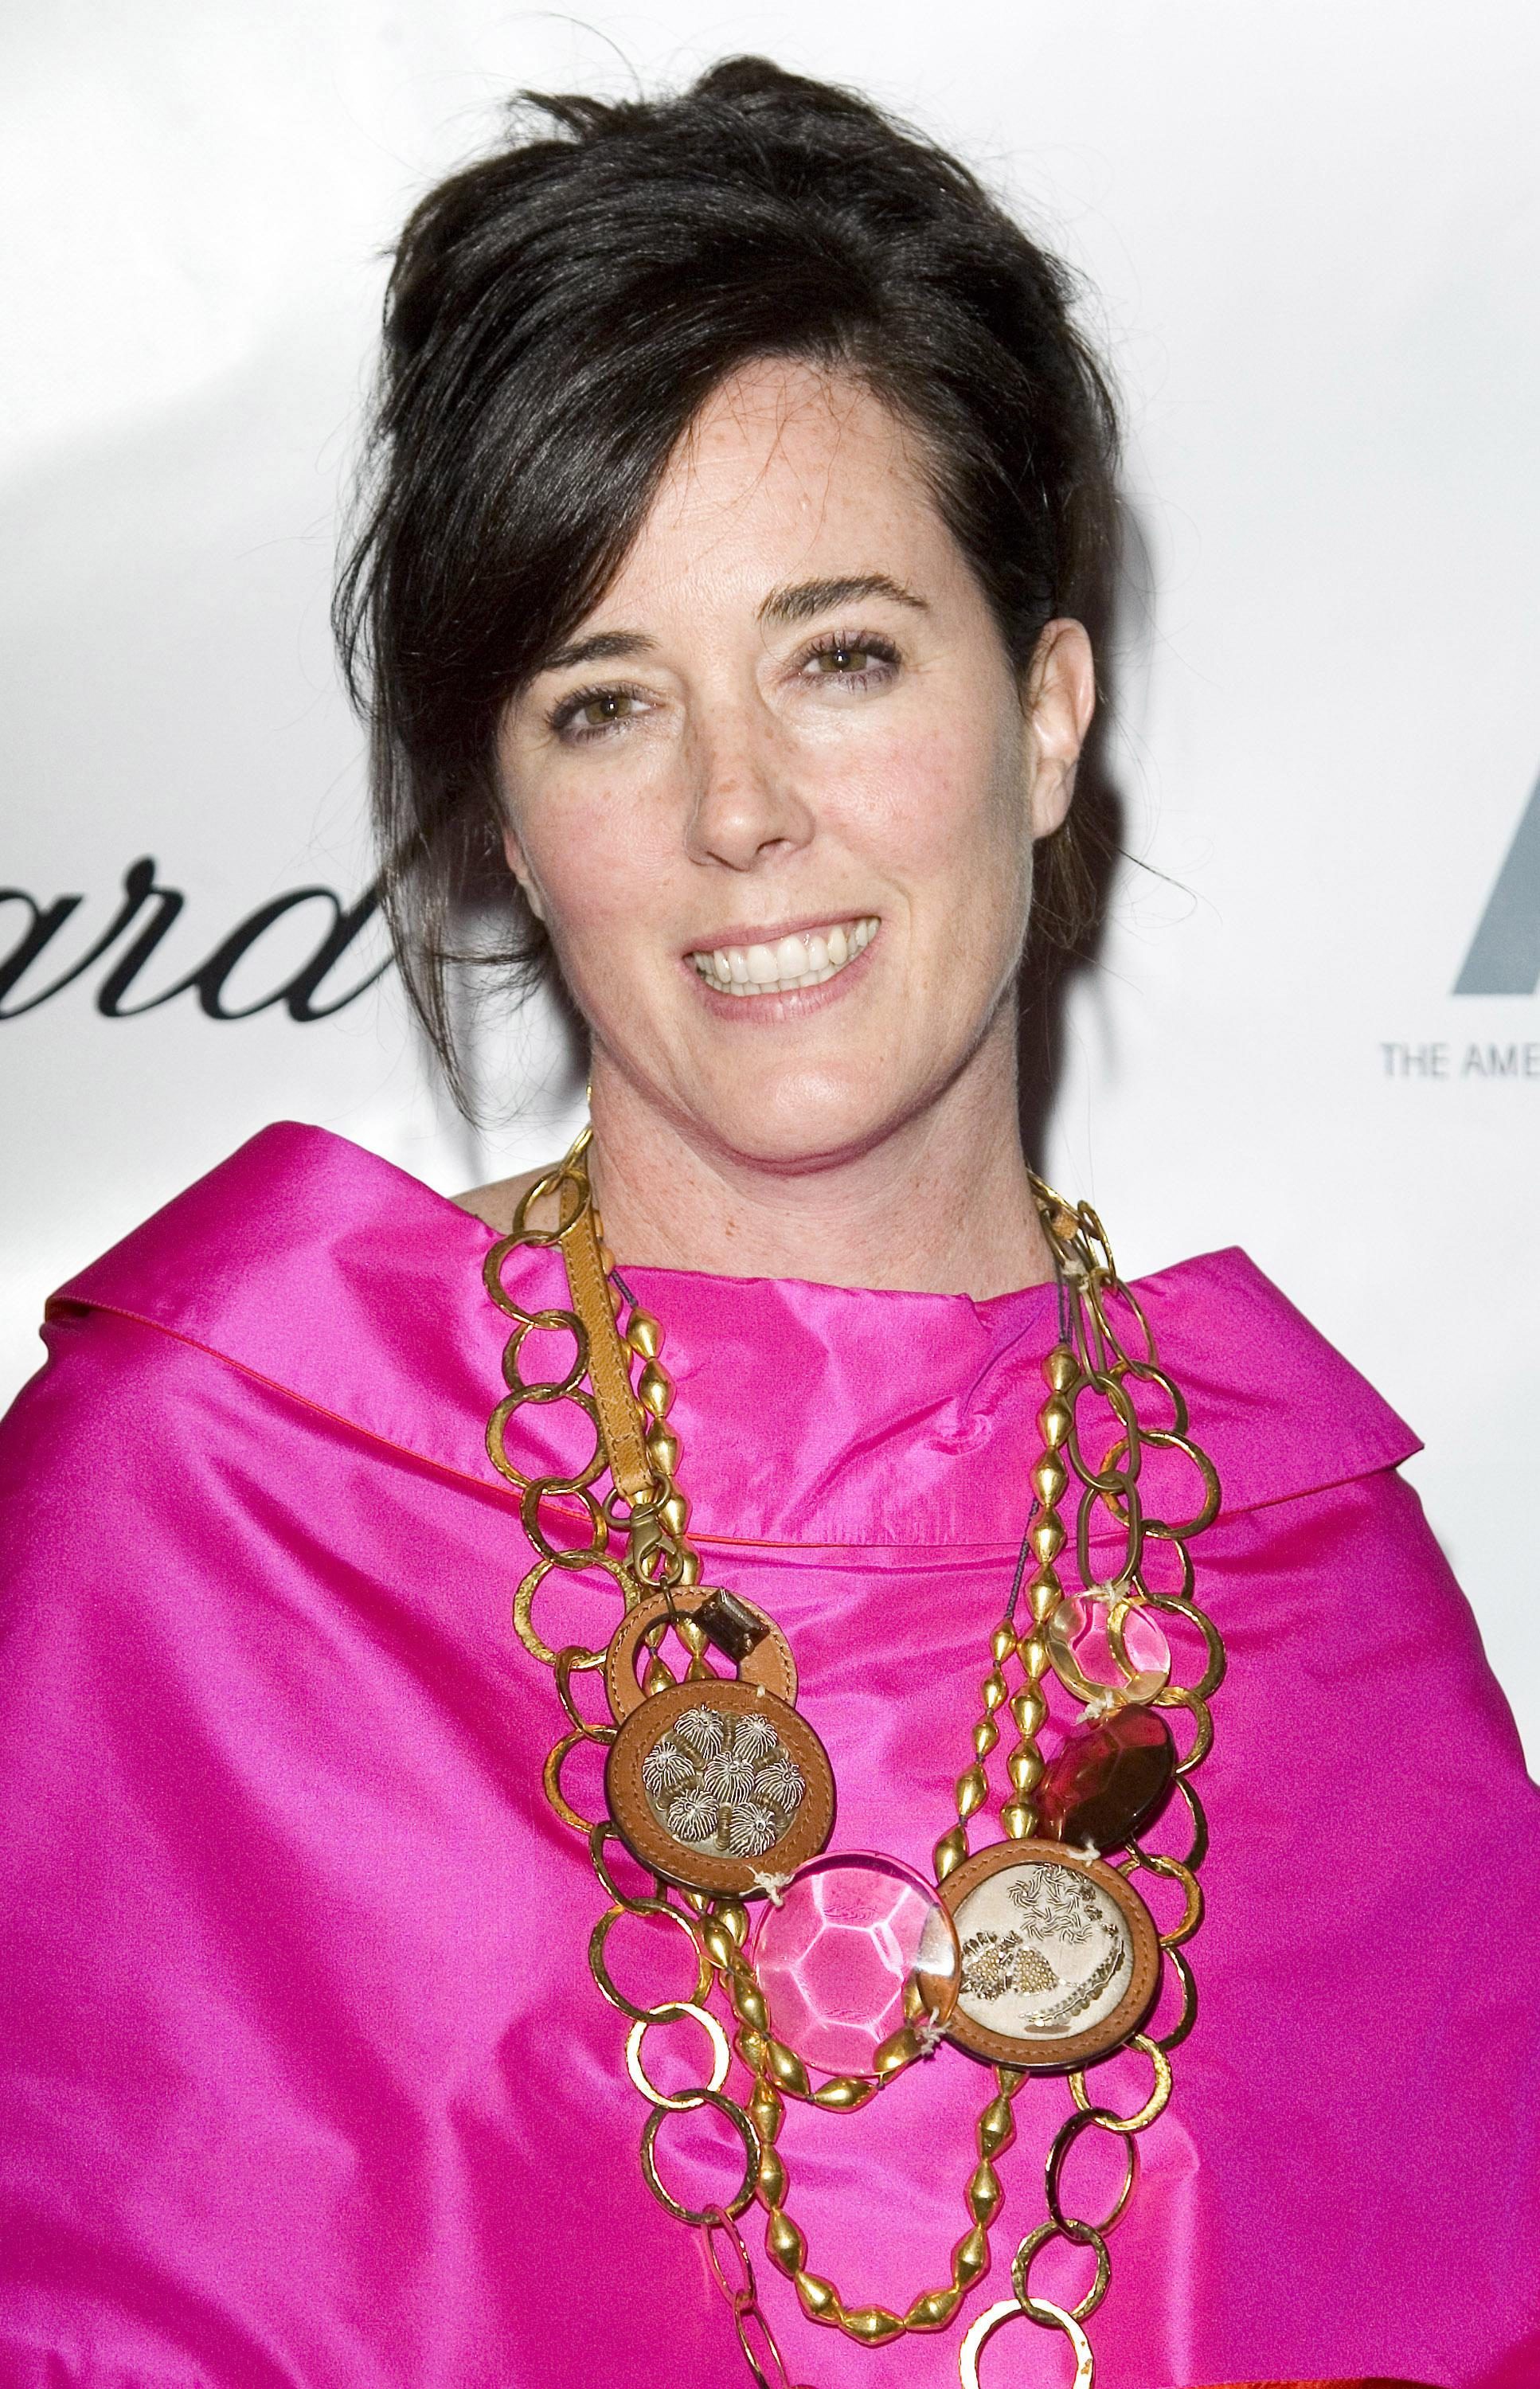 Designer Kate Spade, 55, found dead in apparent suicide